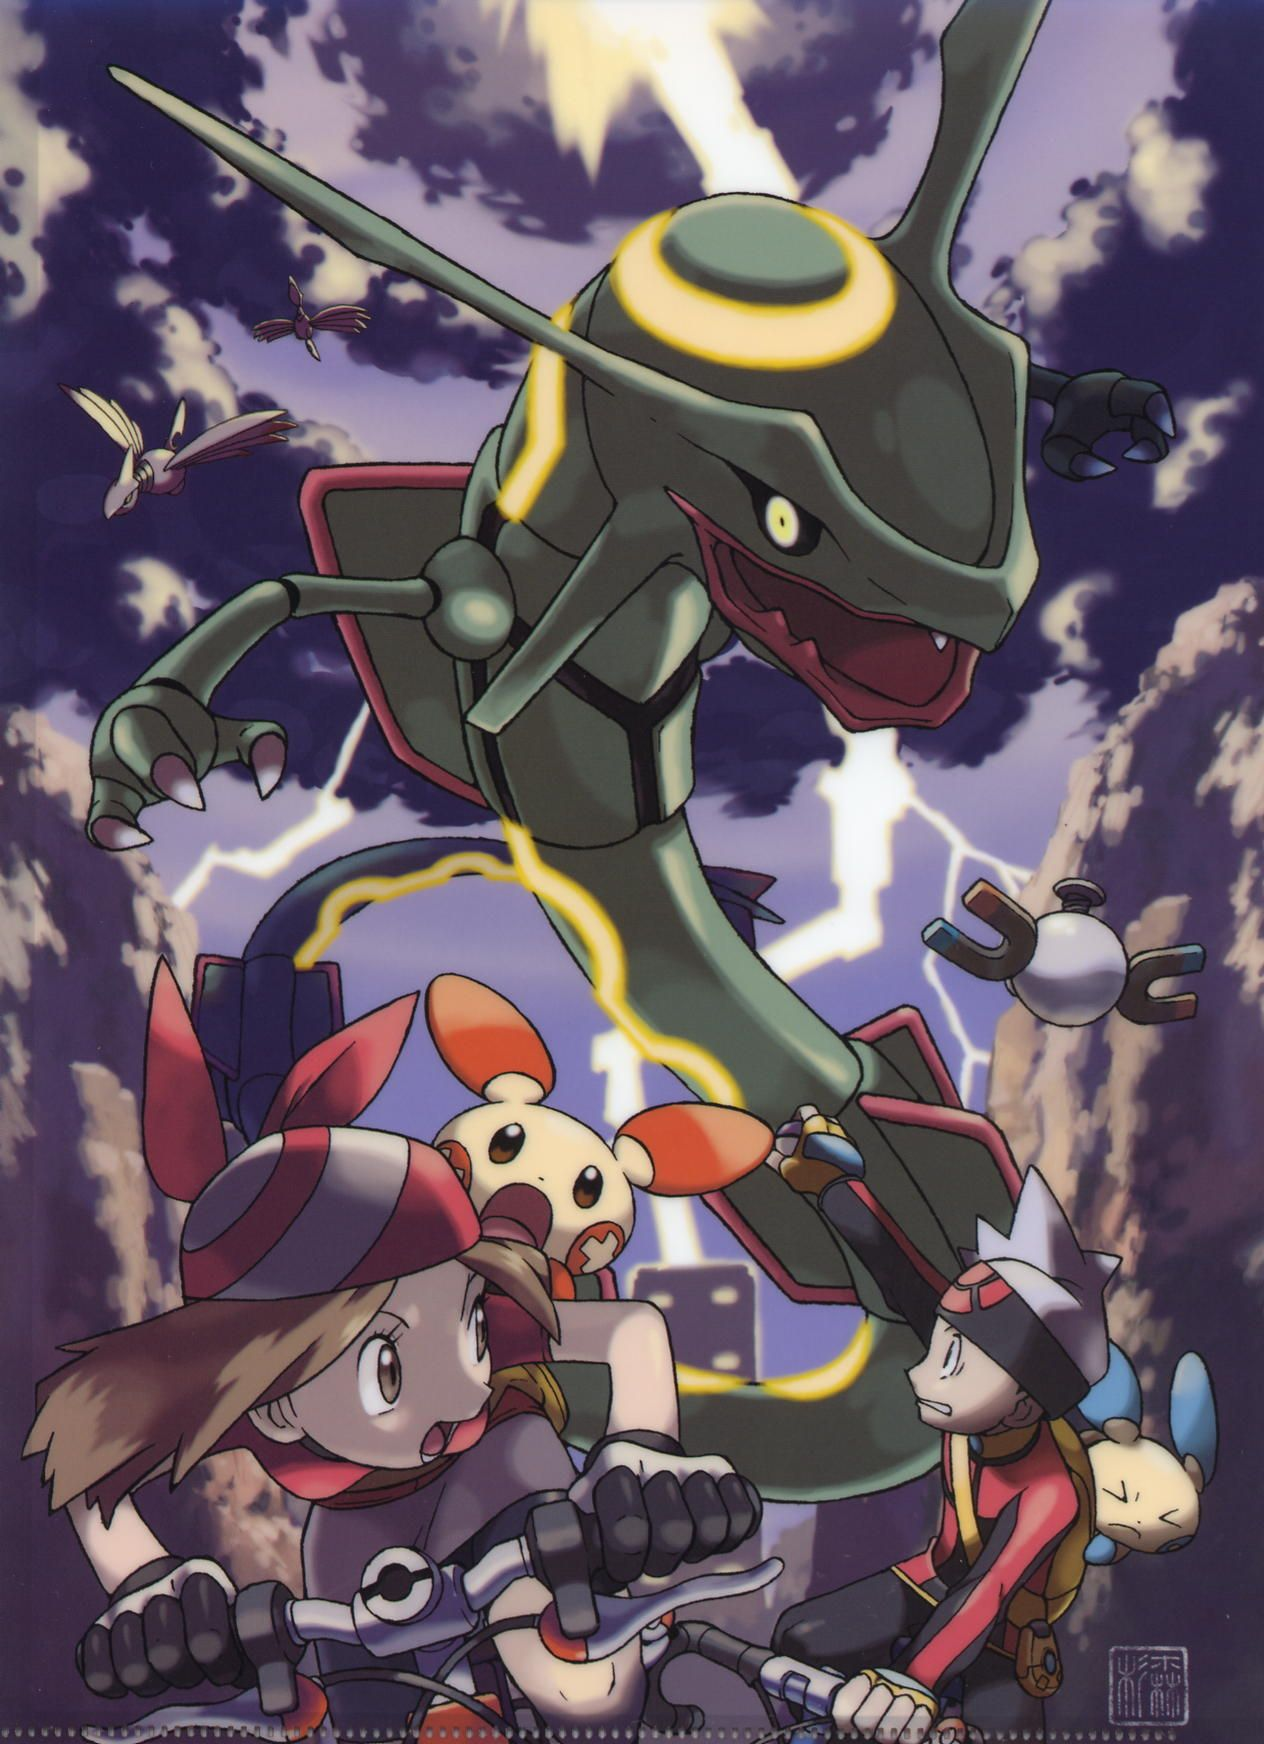 http://www.pidgi/wiki/images/b/b3/rayquaza%27s_imperial_wrath